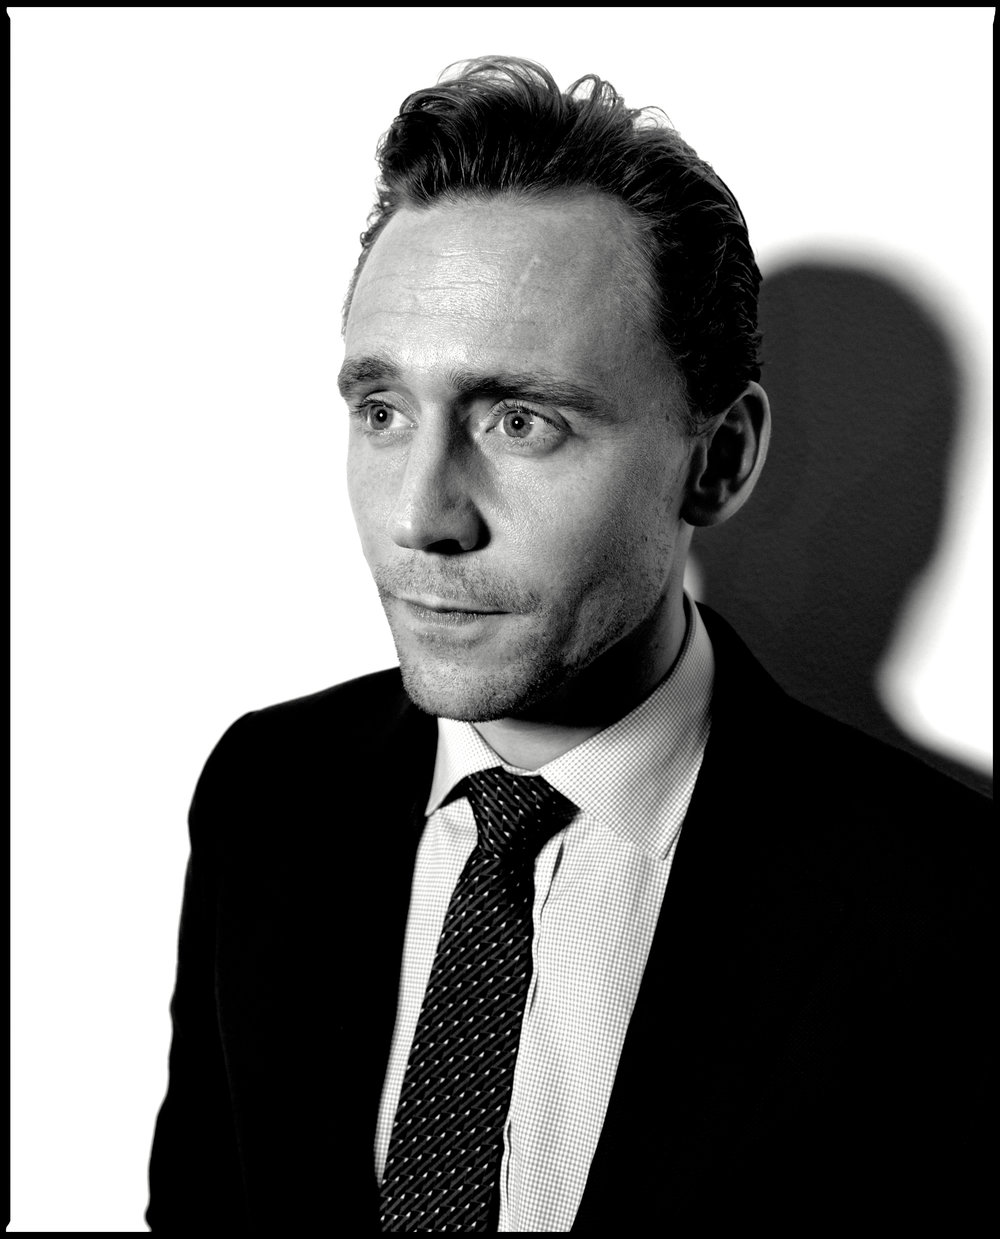 Tom Hiddleston - Actor